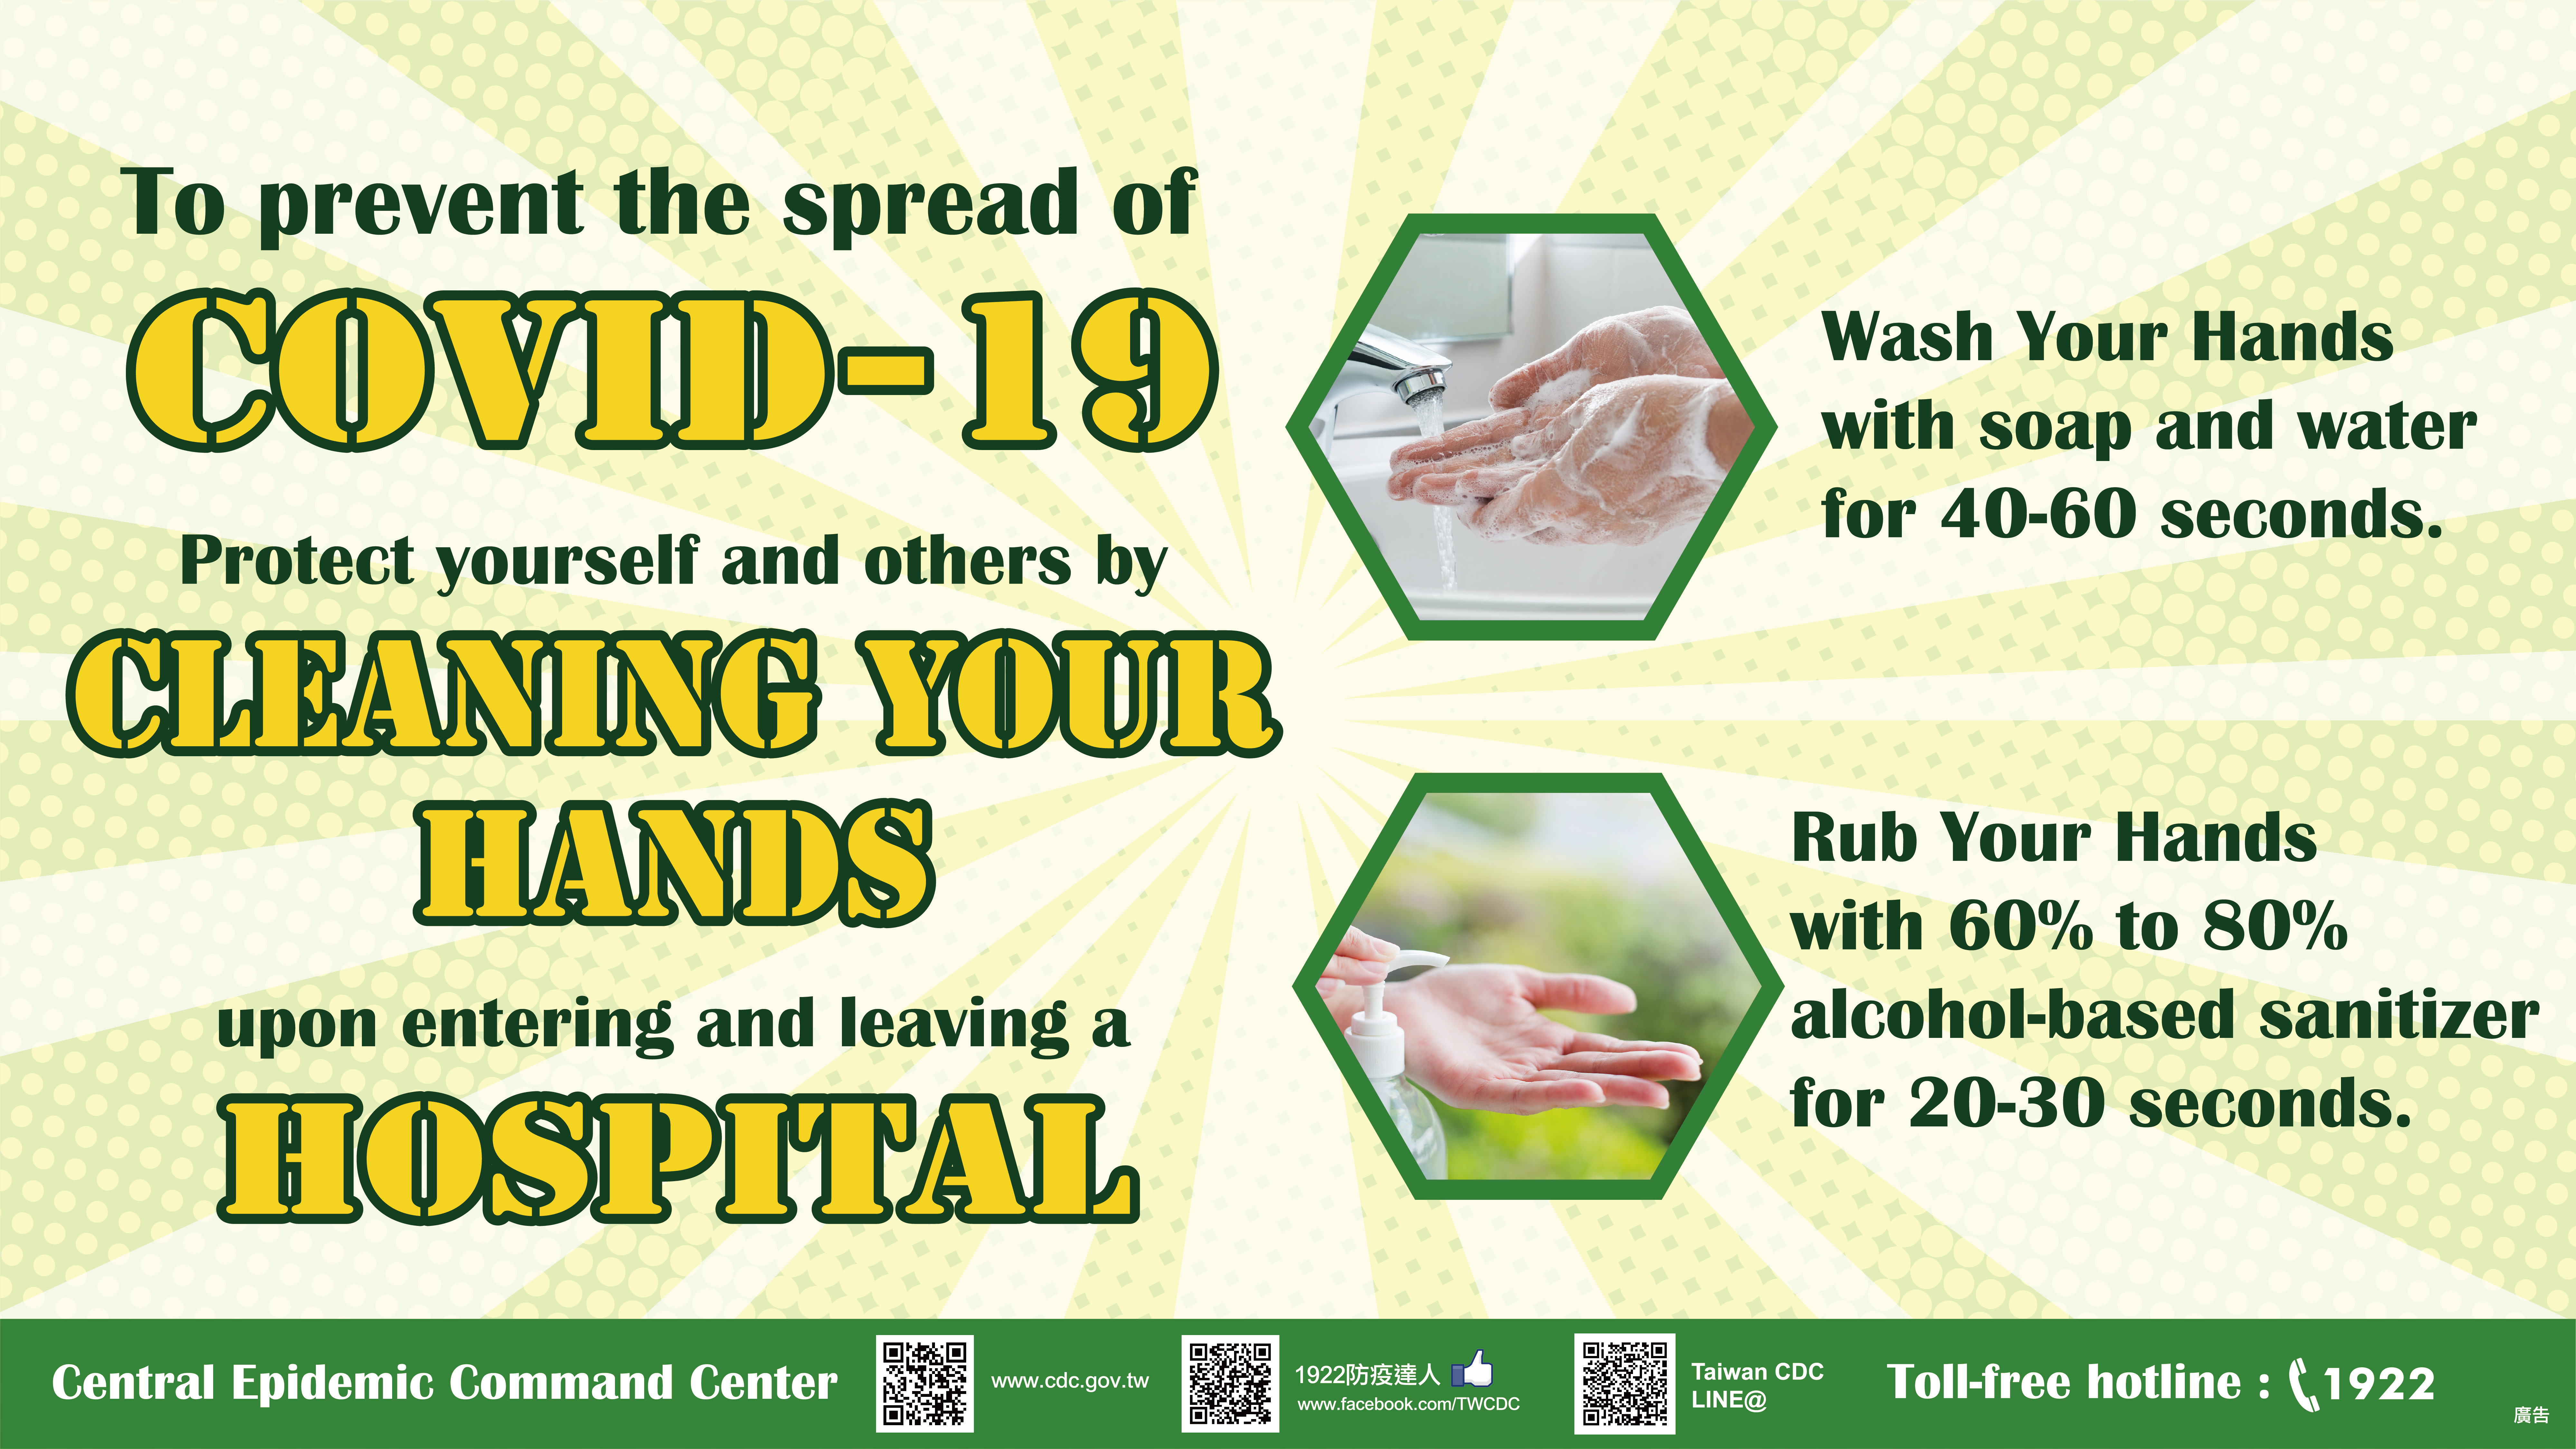 CLEAN YOUR HANDS (HOSPITAL)